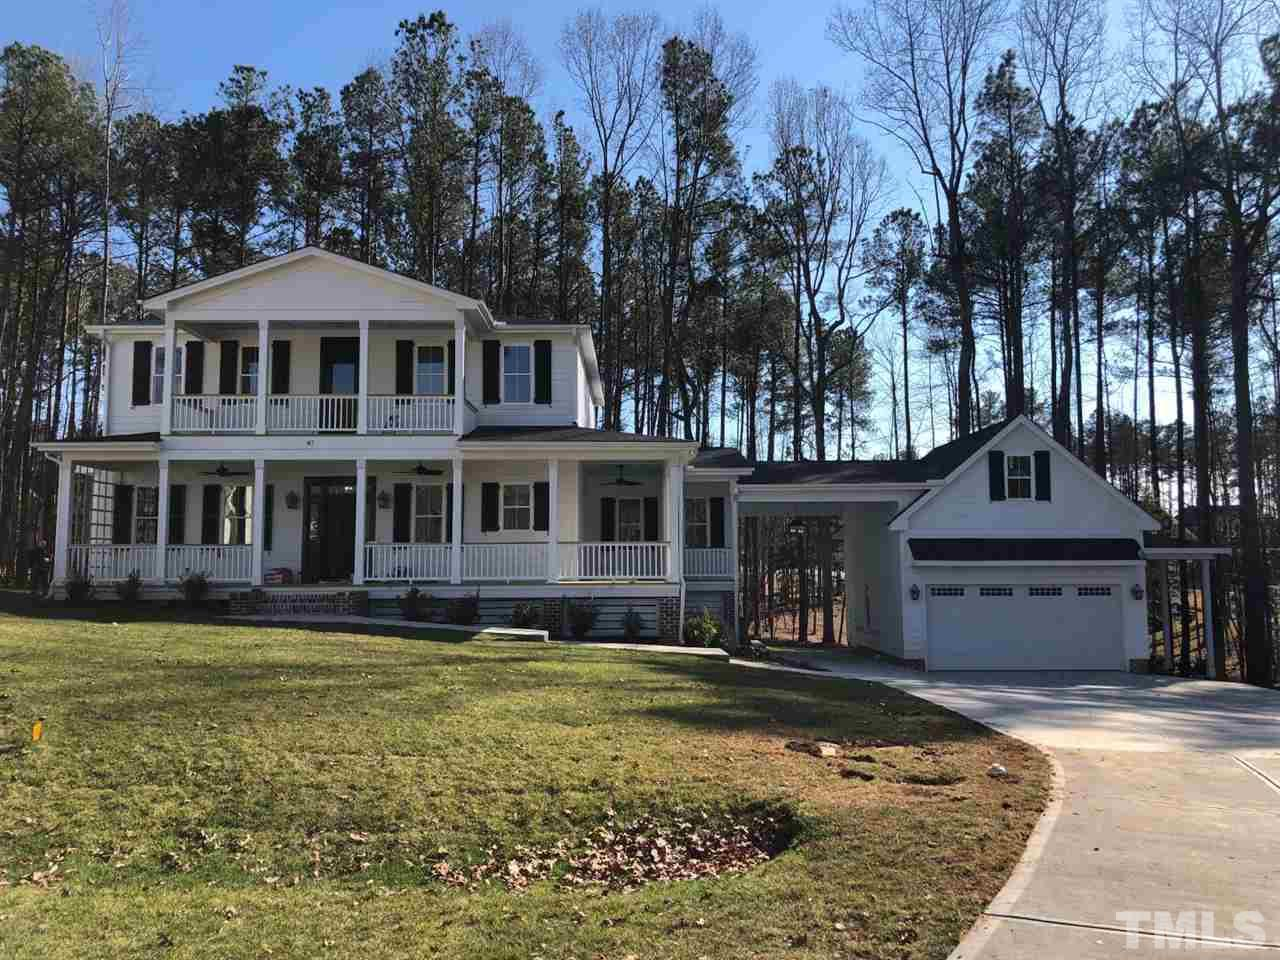 Great Cul De Sac lot in gated community. New Construction home with southern architecture, Covered wrap around porch and 2nd floor centered porch. Detached 2 car garage with rear shop and side shed covered parking, connected to the house by a breezeway.